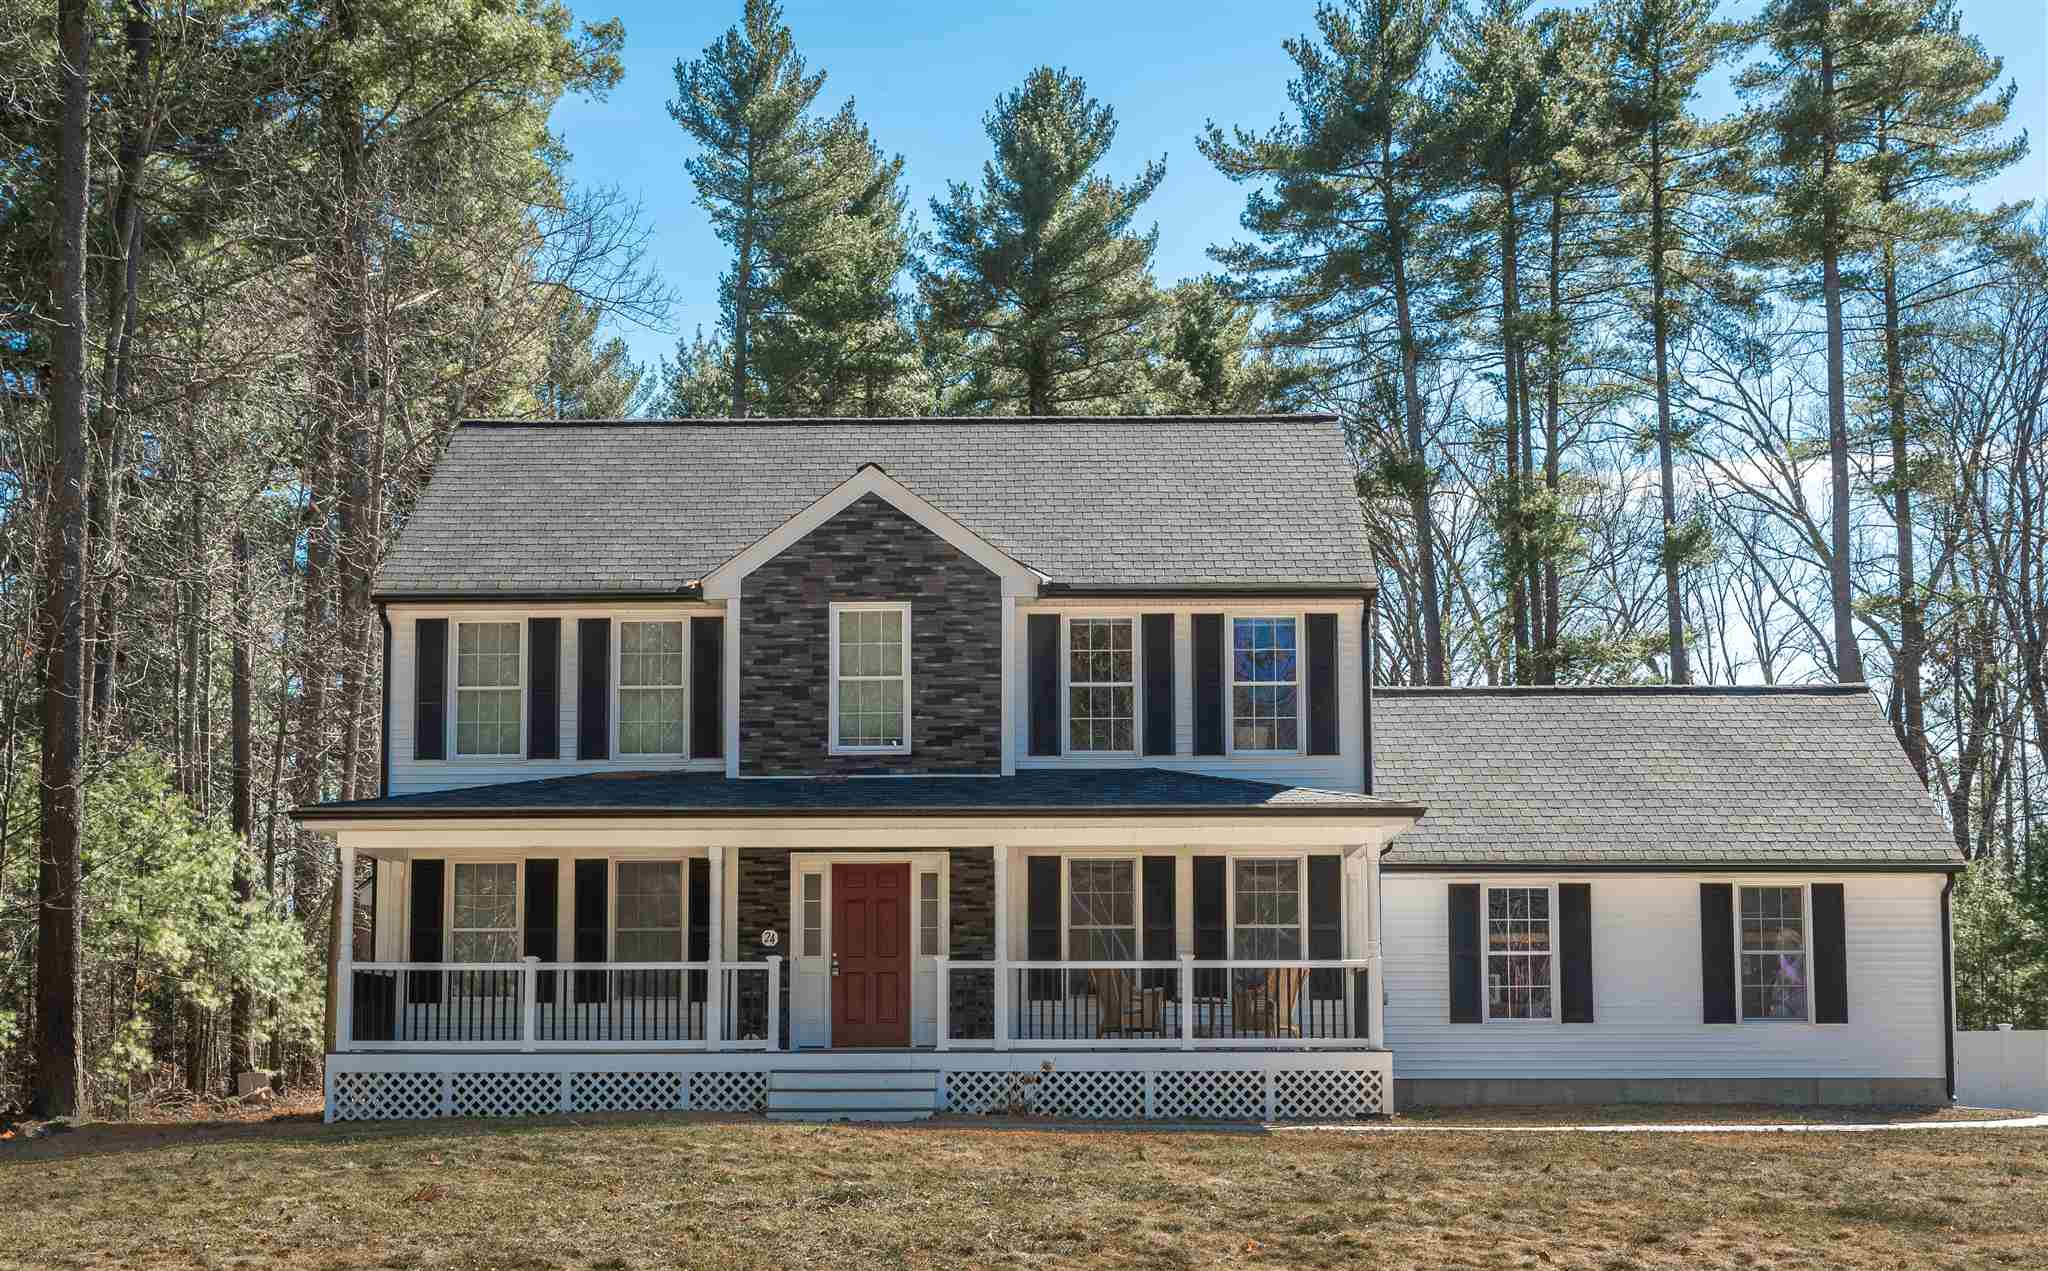 MLS 4799371: 24 Page Road, Litchfield NH